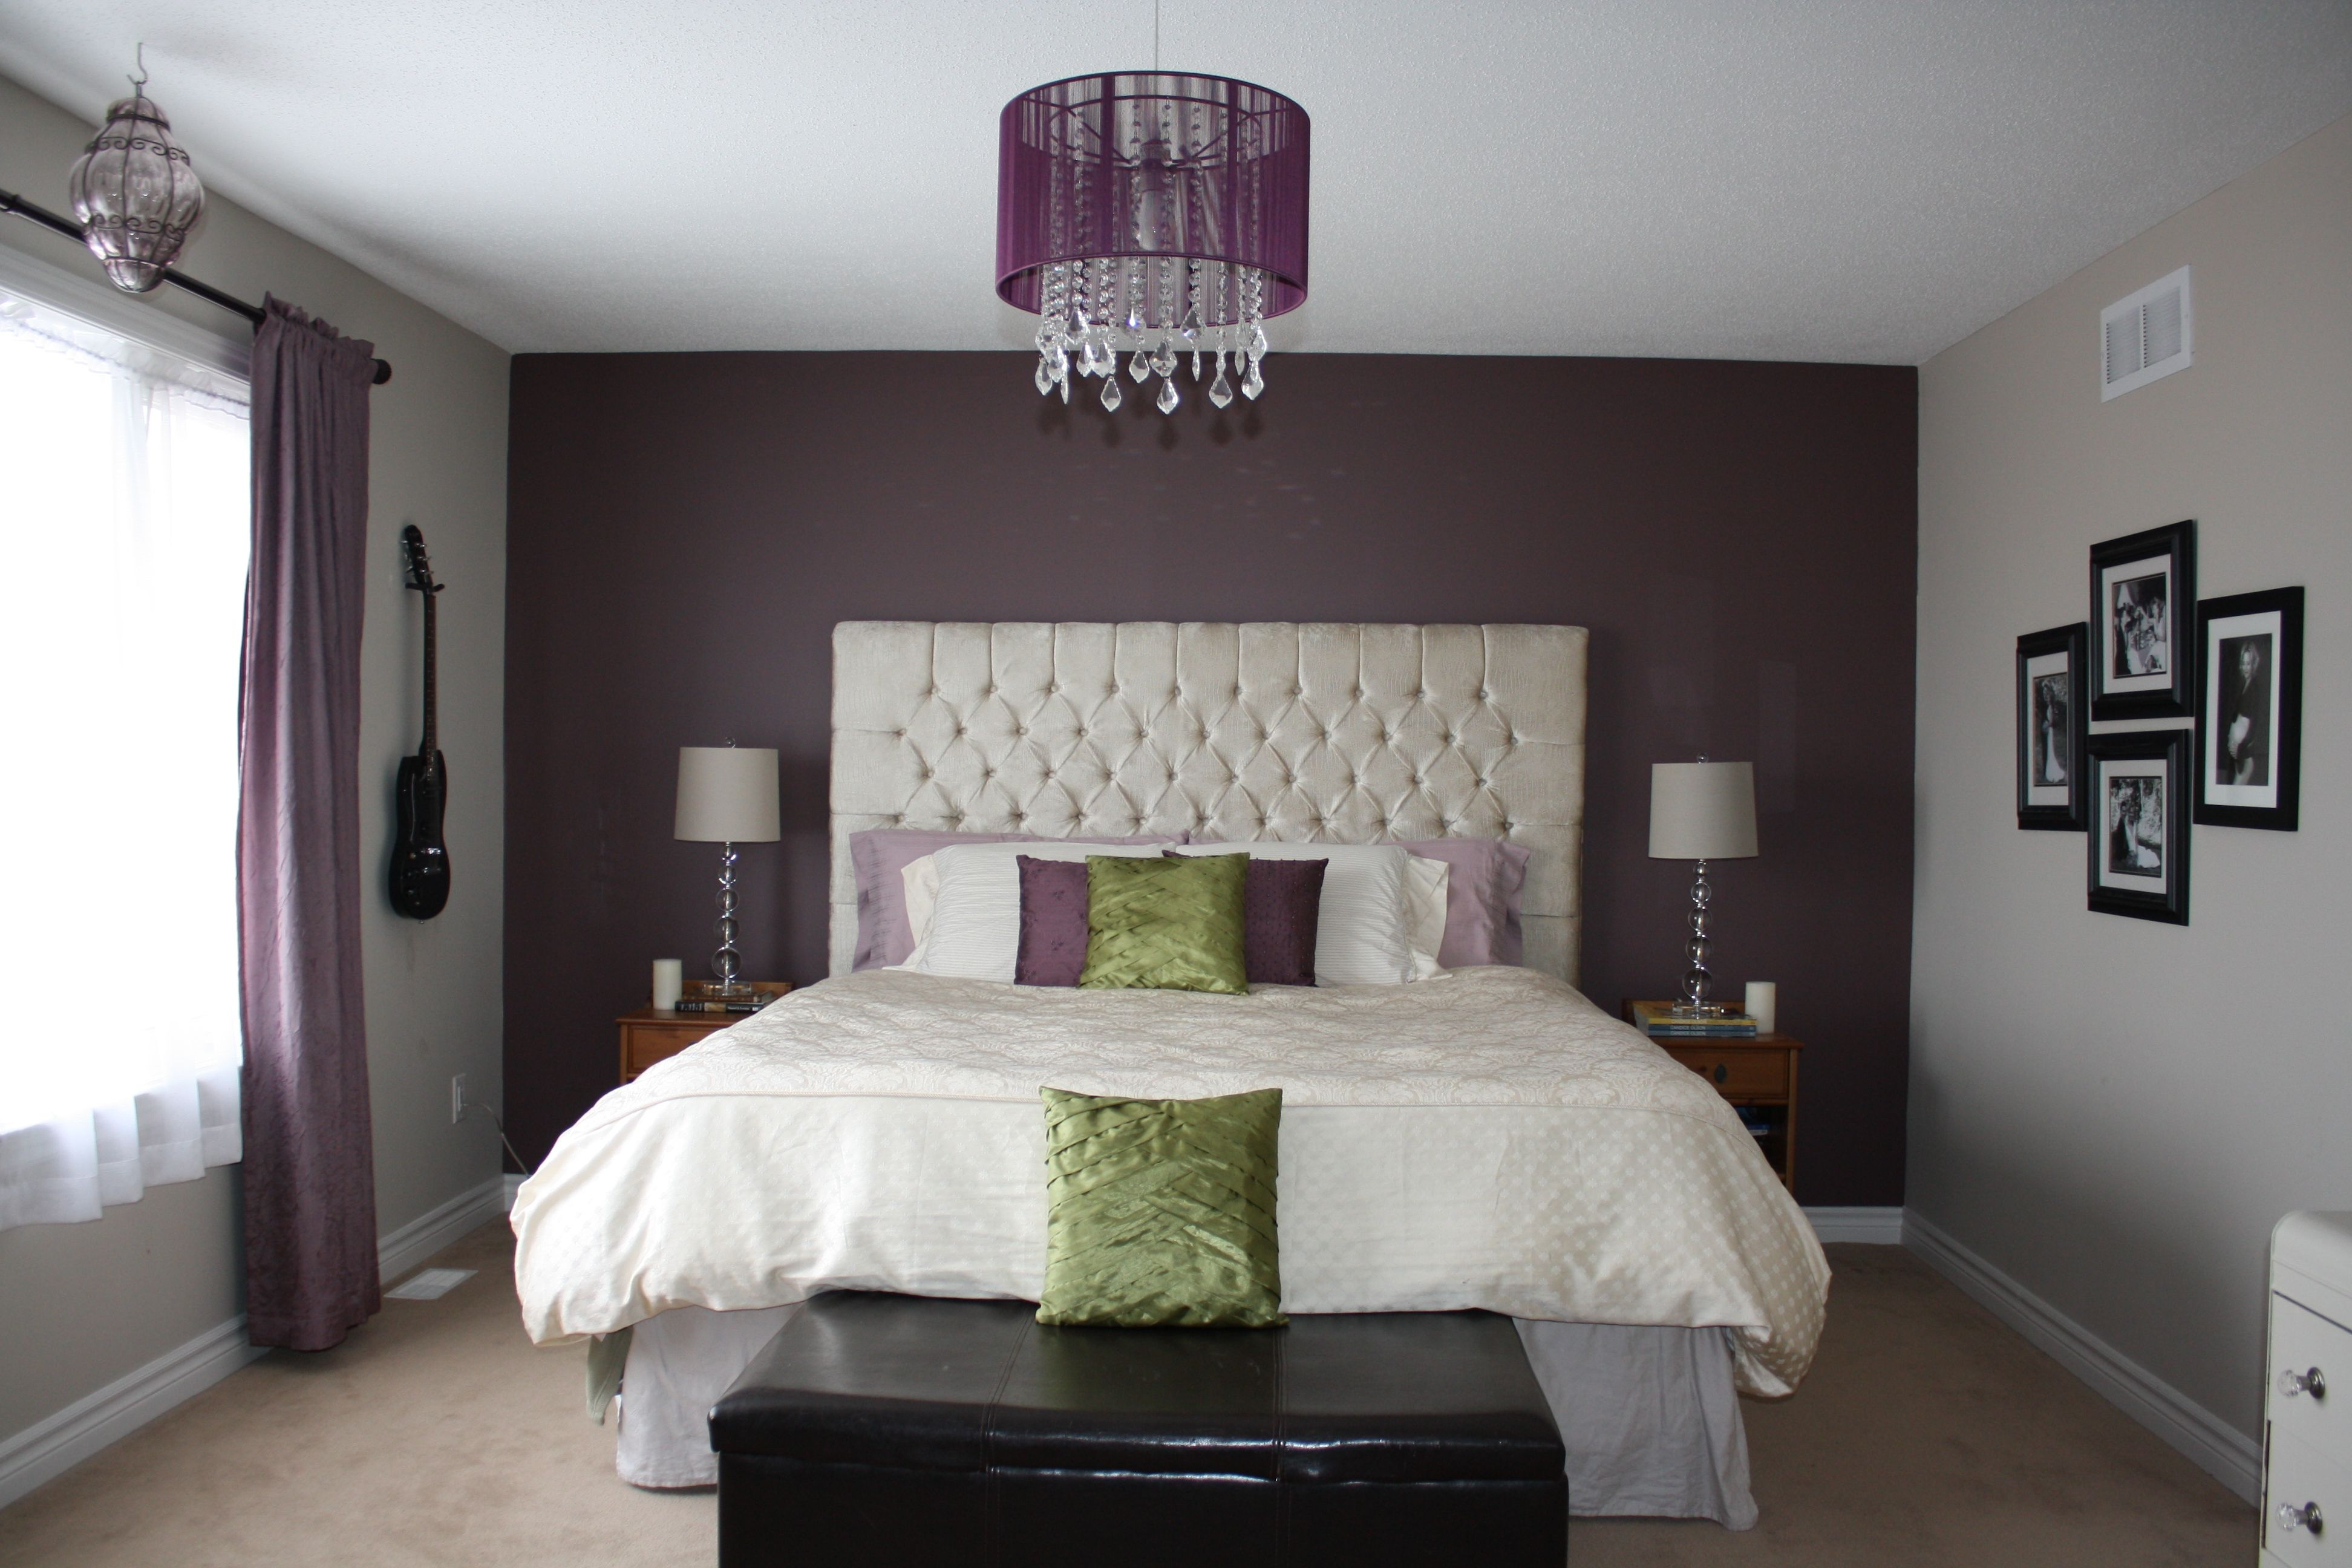 10 Bedroom Feature Wall Ideas Most Amazing as well as ...